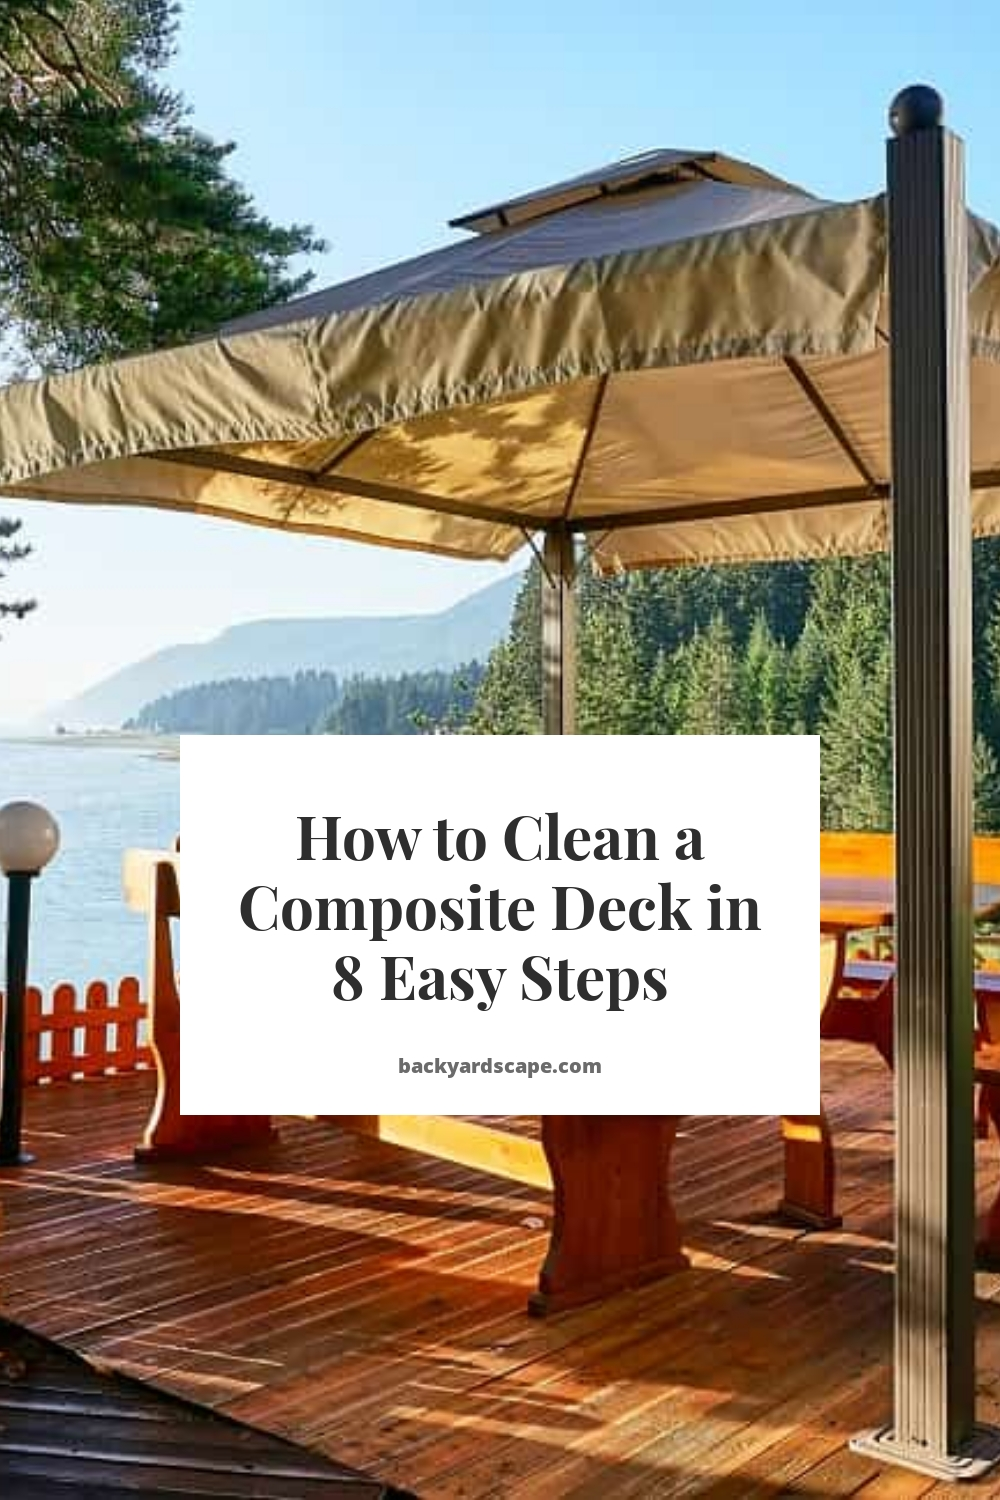 How to Clean a Composite Deck in 8 Easy Steps